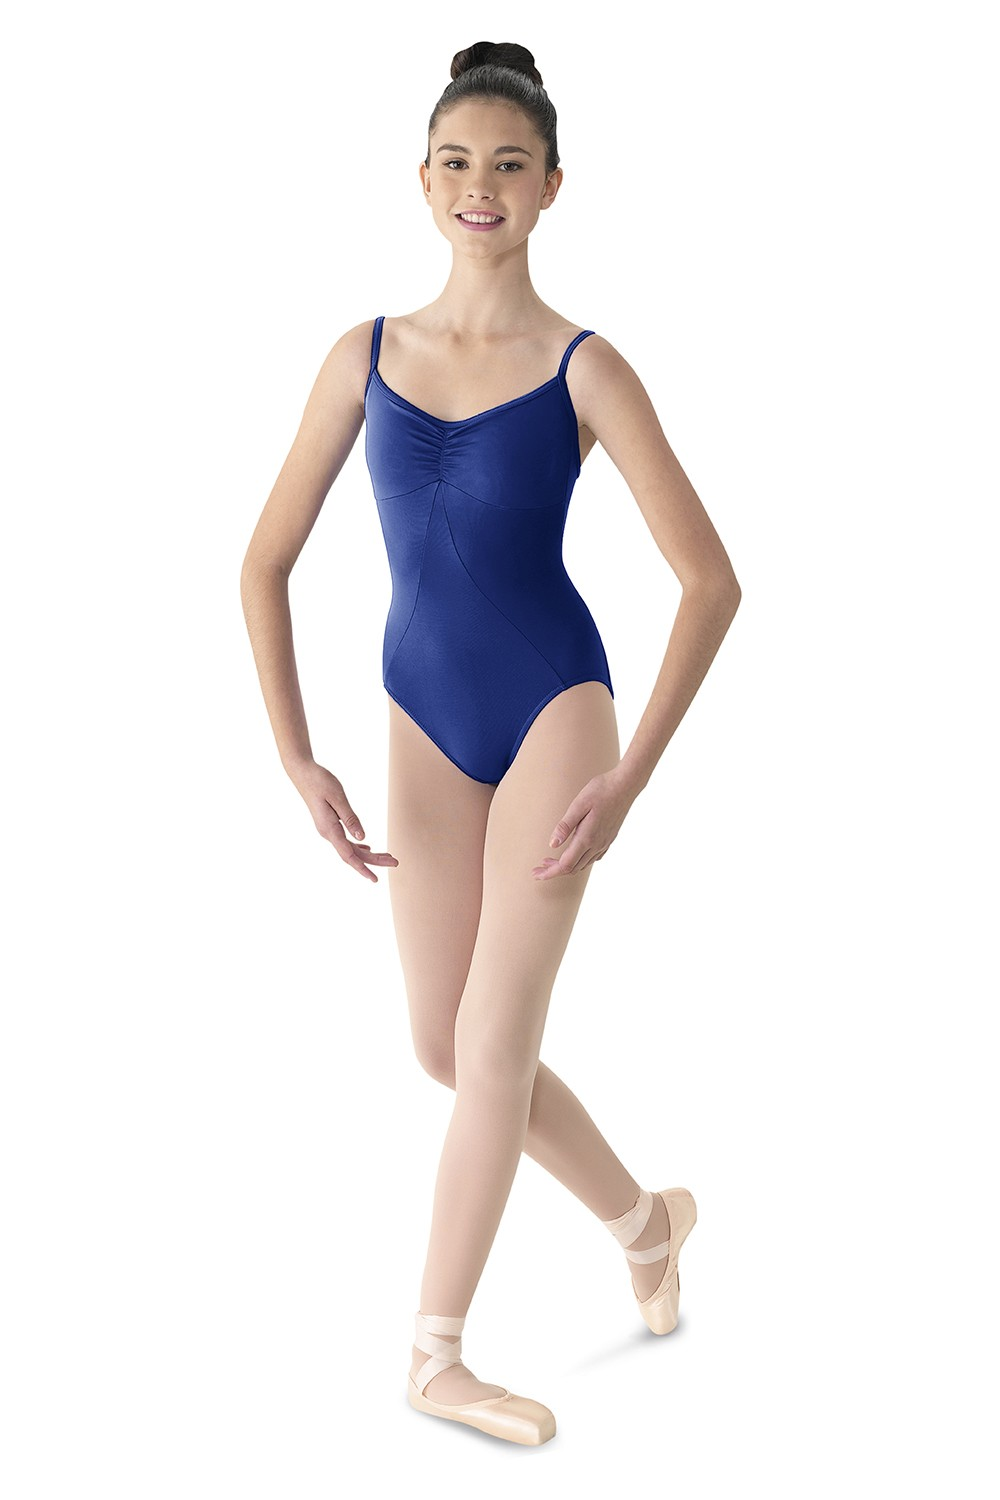 Maillot Camisola Con Escote De Diamantes Women's Dance Leotards